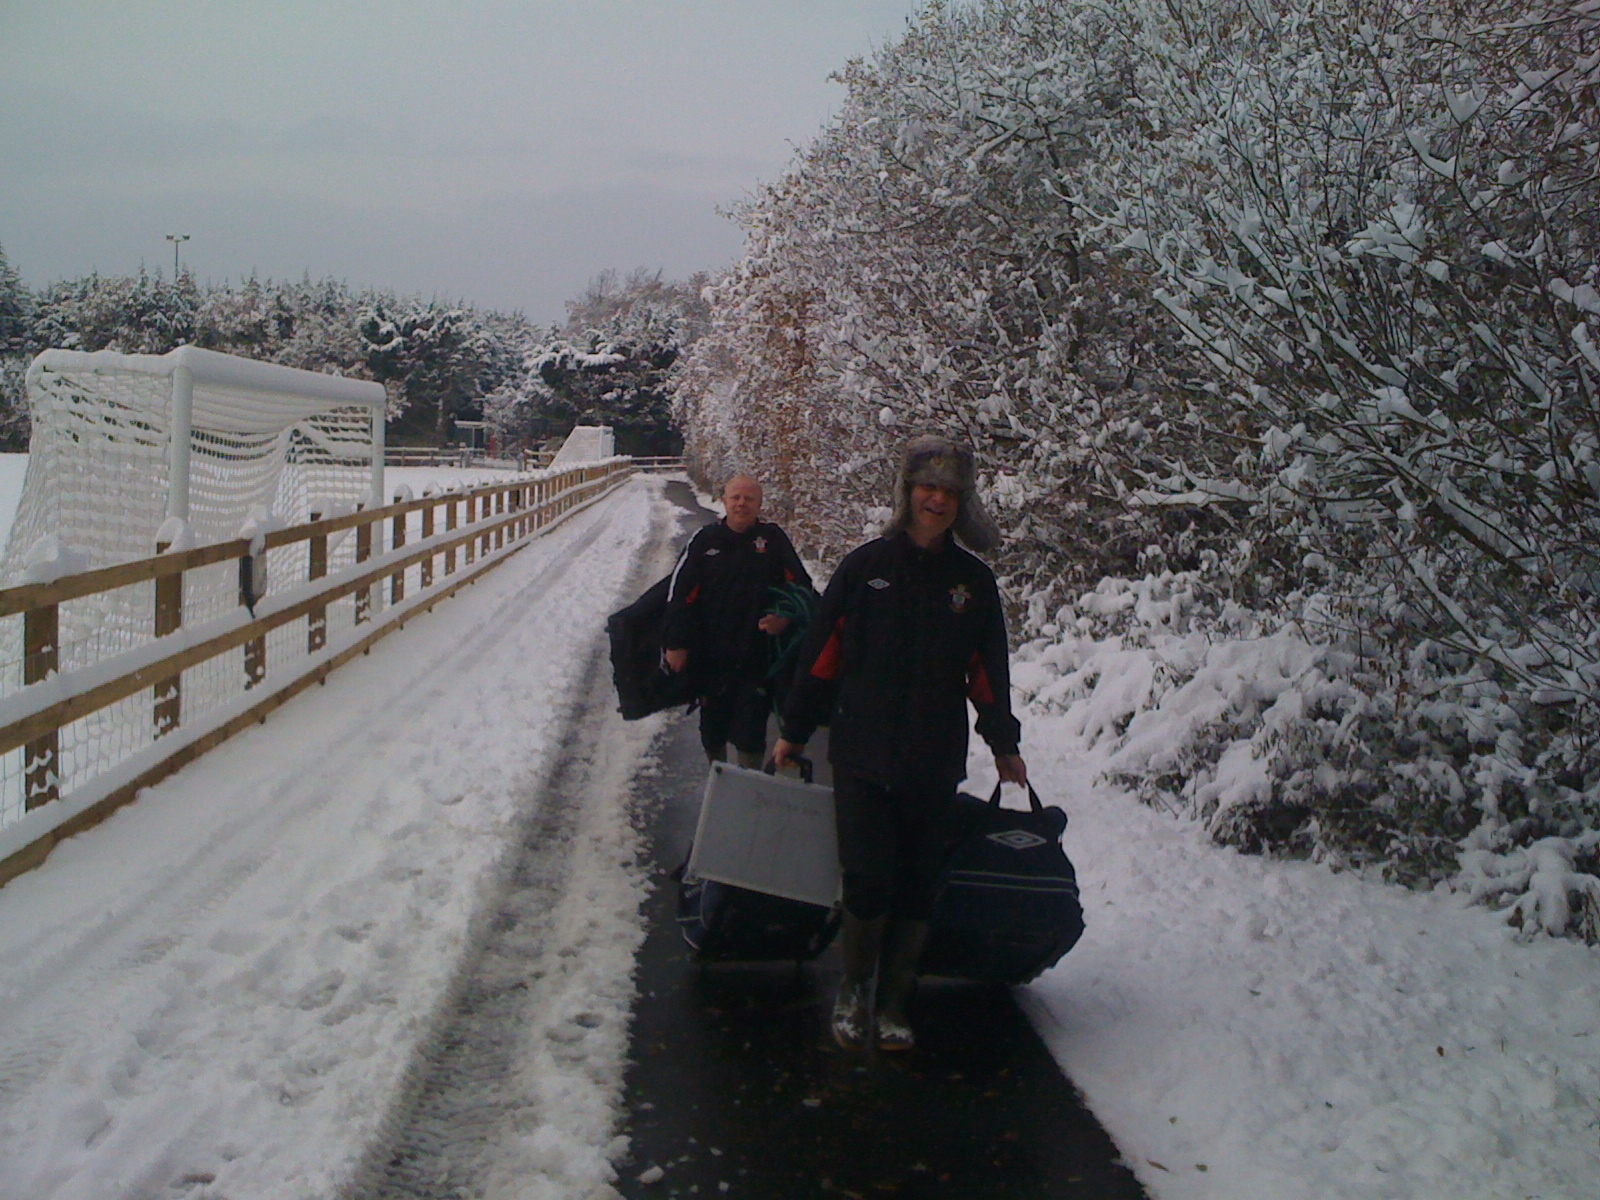 All kinds of weather the kit gets through ! Mark and Dave doing a fantastic and tireless job at Southampton in 2010/2011 winter @KitmanForbsey @Southampton